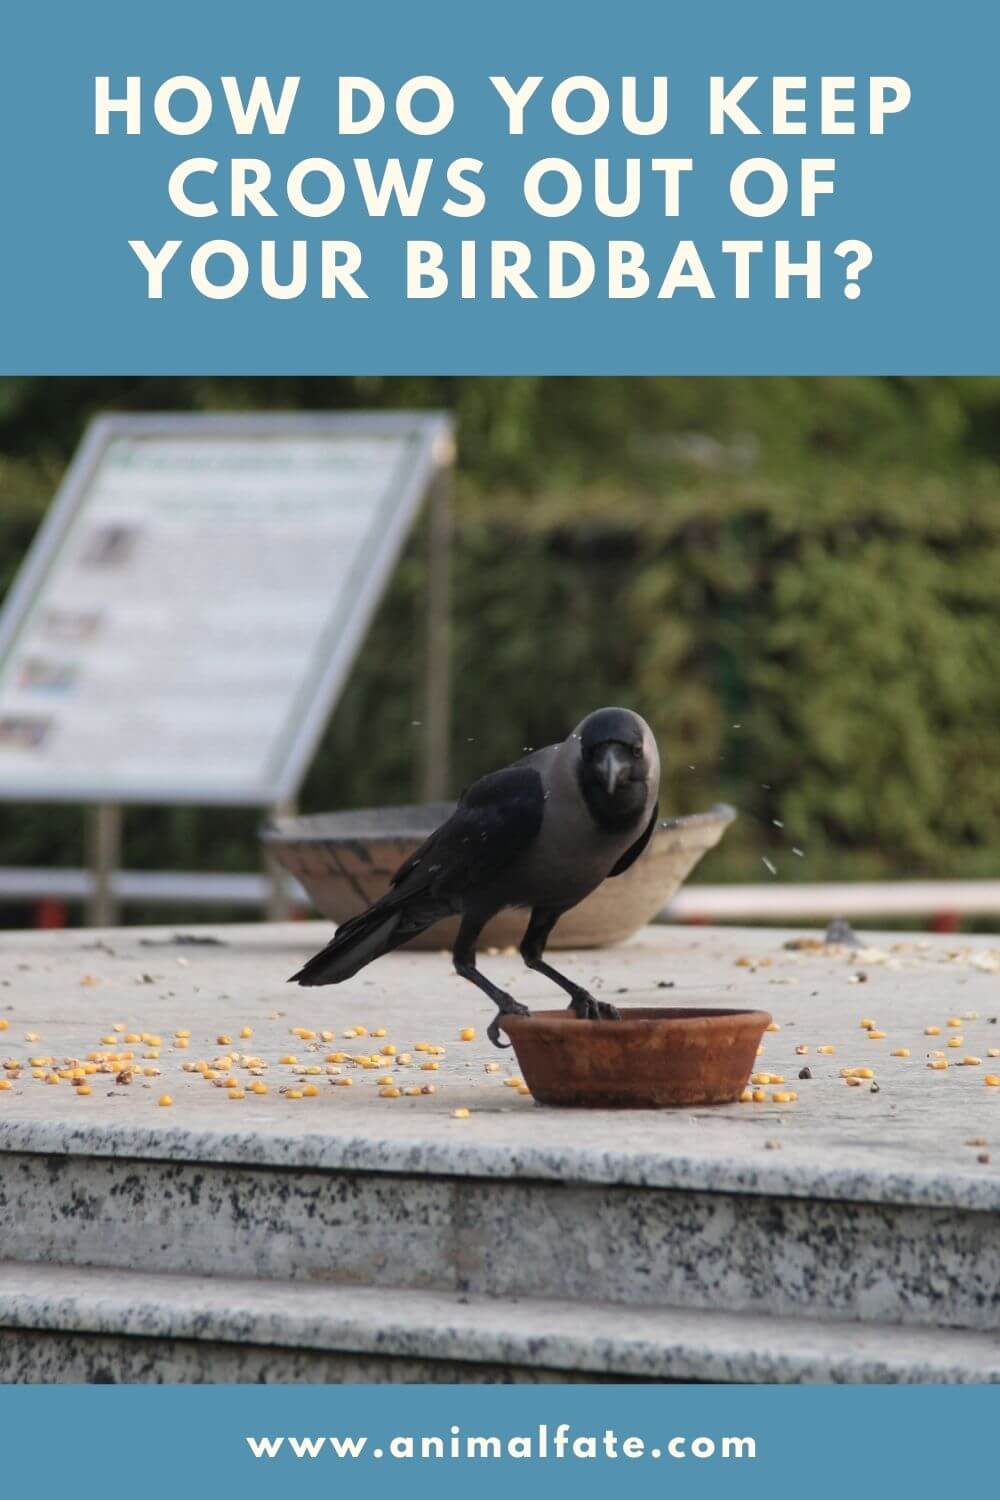 how do you keep crows out of your birdbath